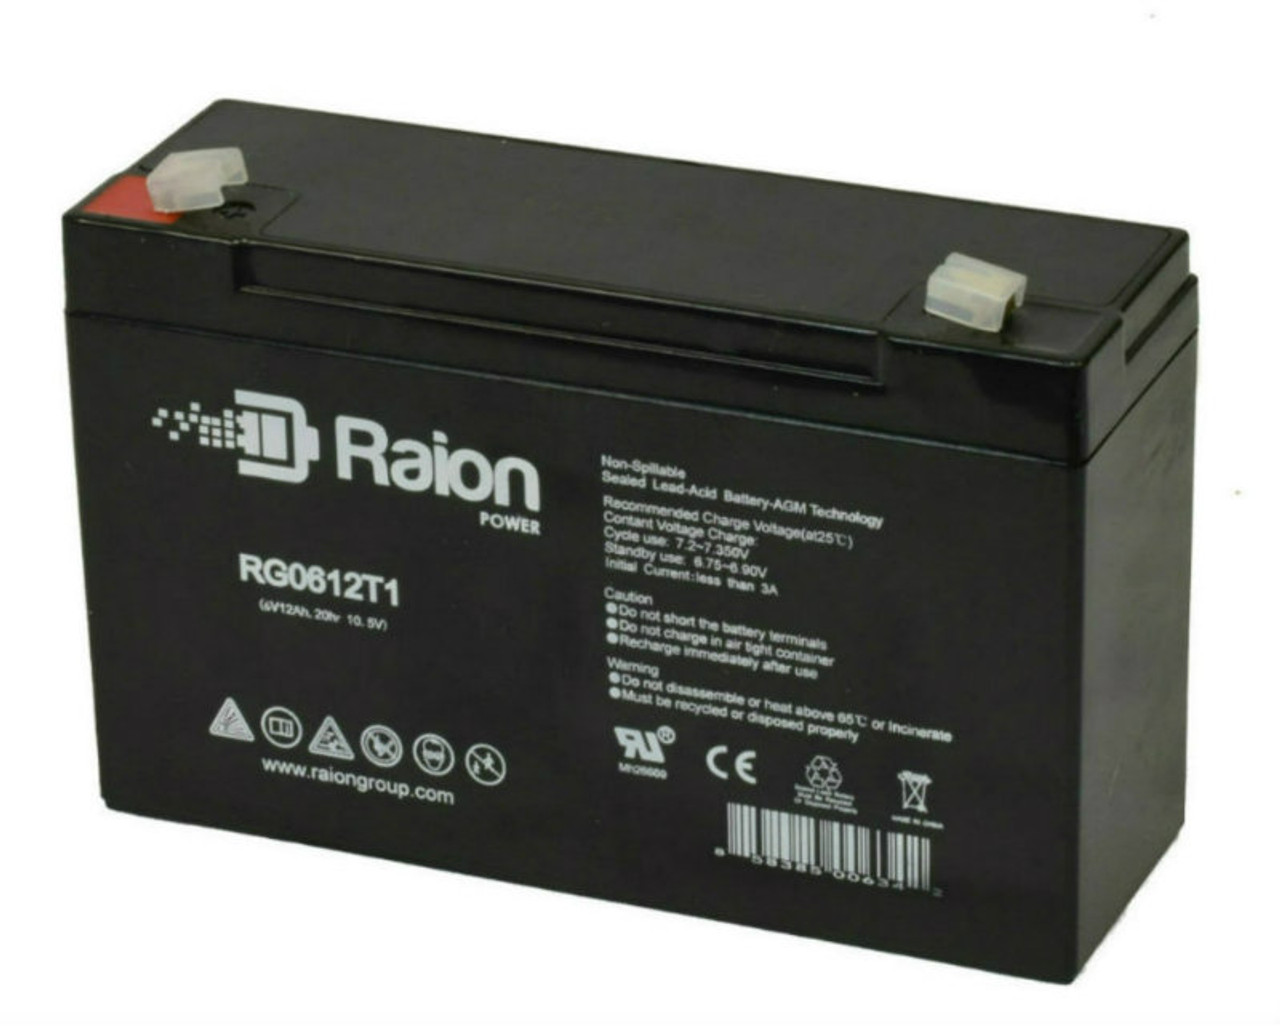 Raion Power RG06120T1 Replacement Battery Pack for Light Alarms 5E15BR emergency light